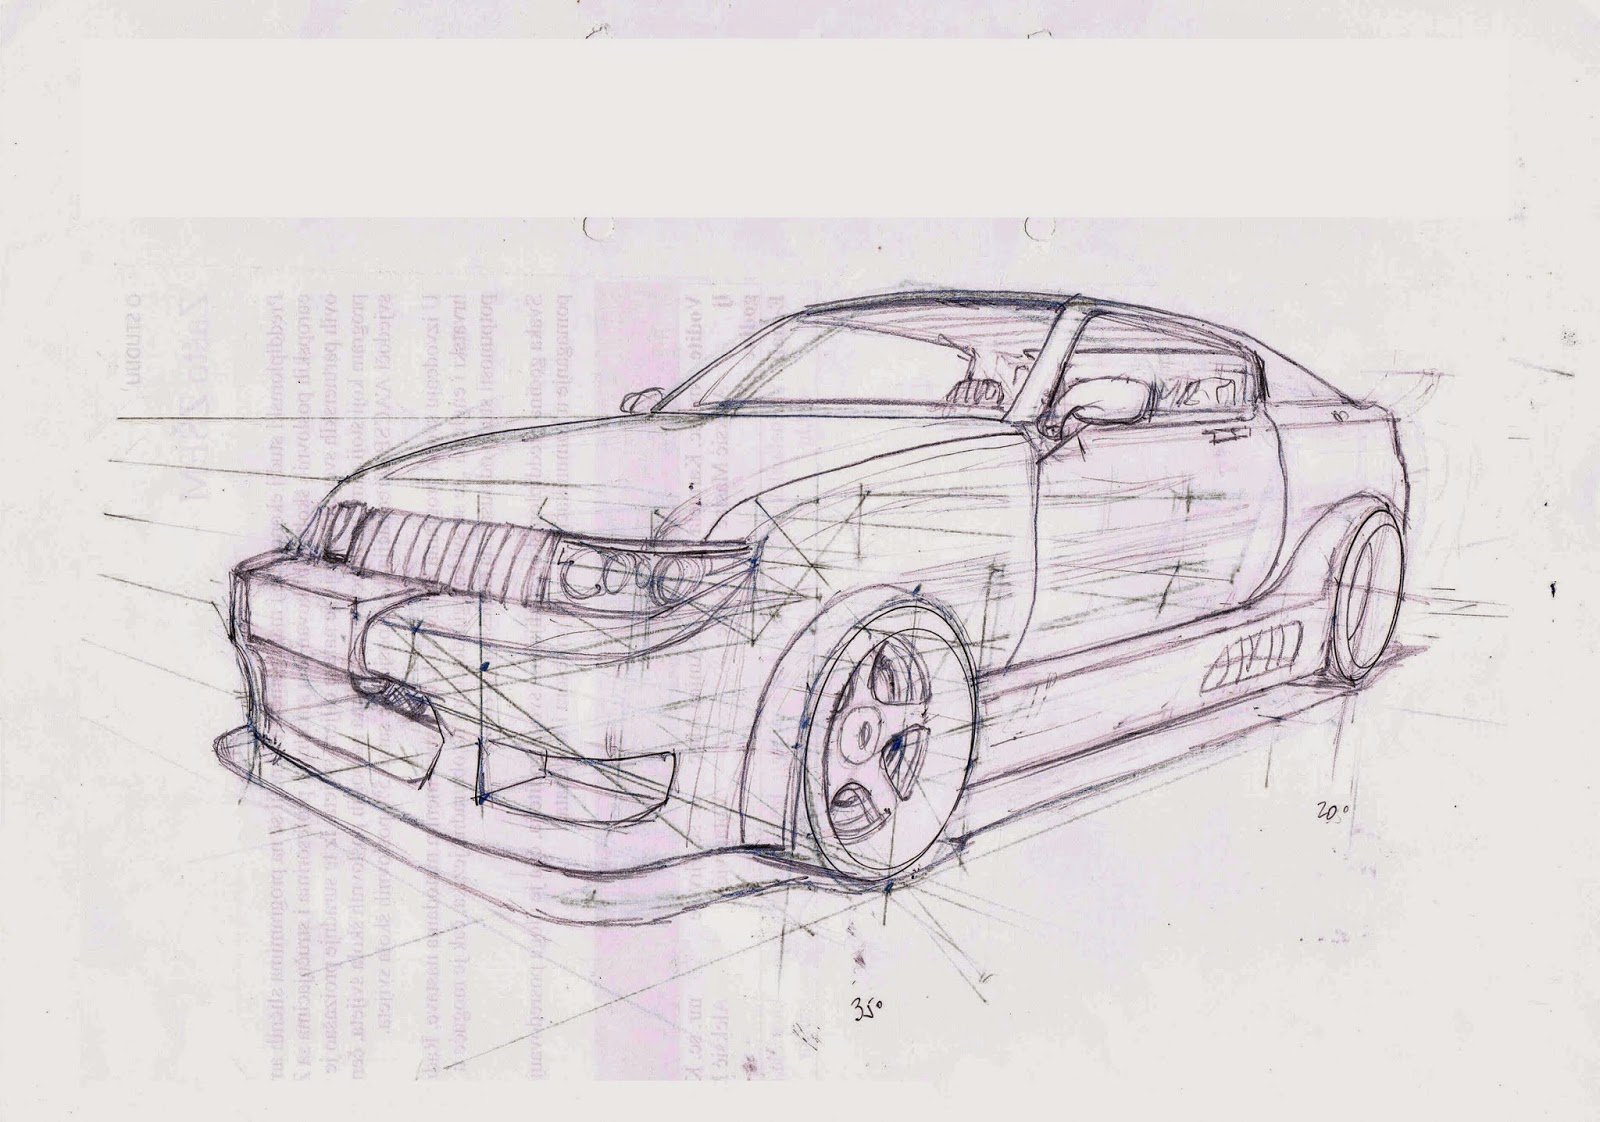 Having fun drawing cars | The Hidden Worlds of Mishimi